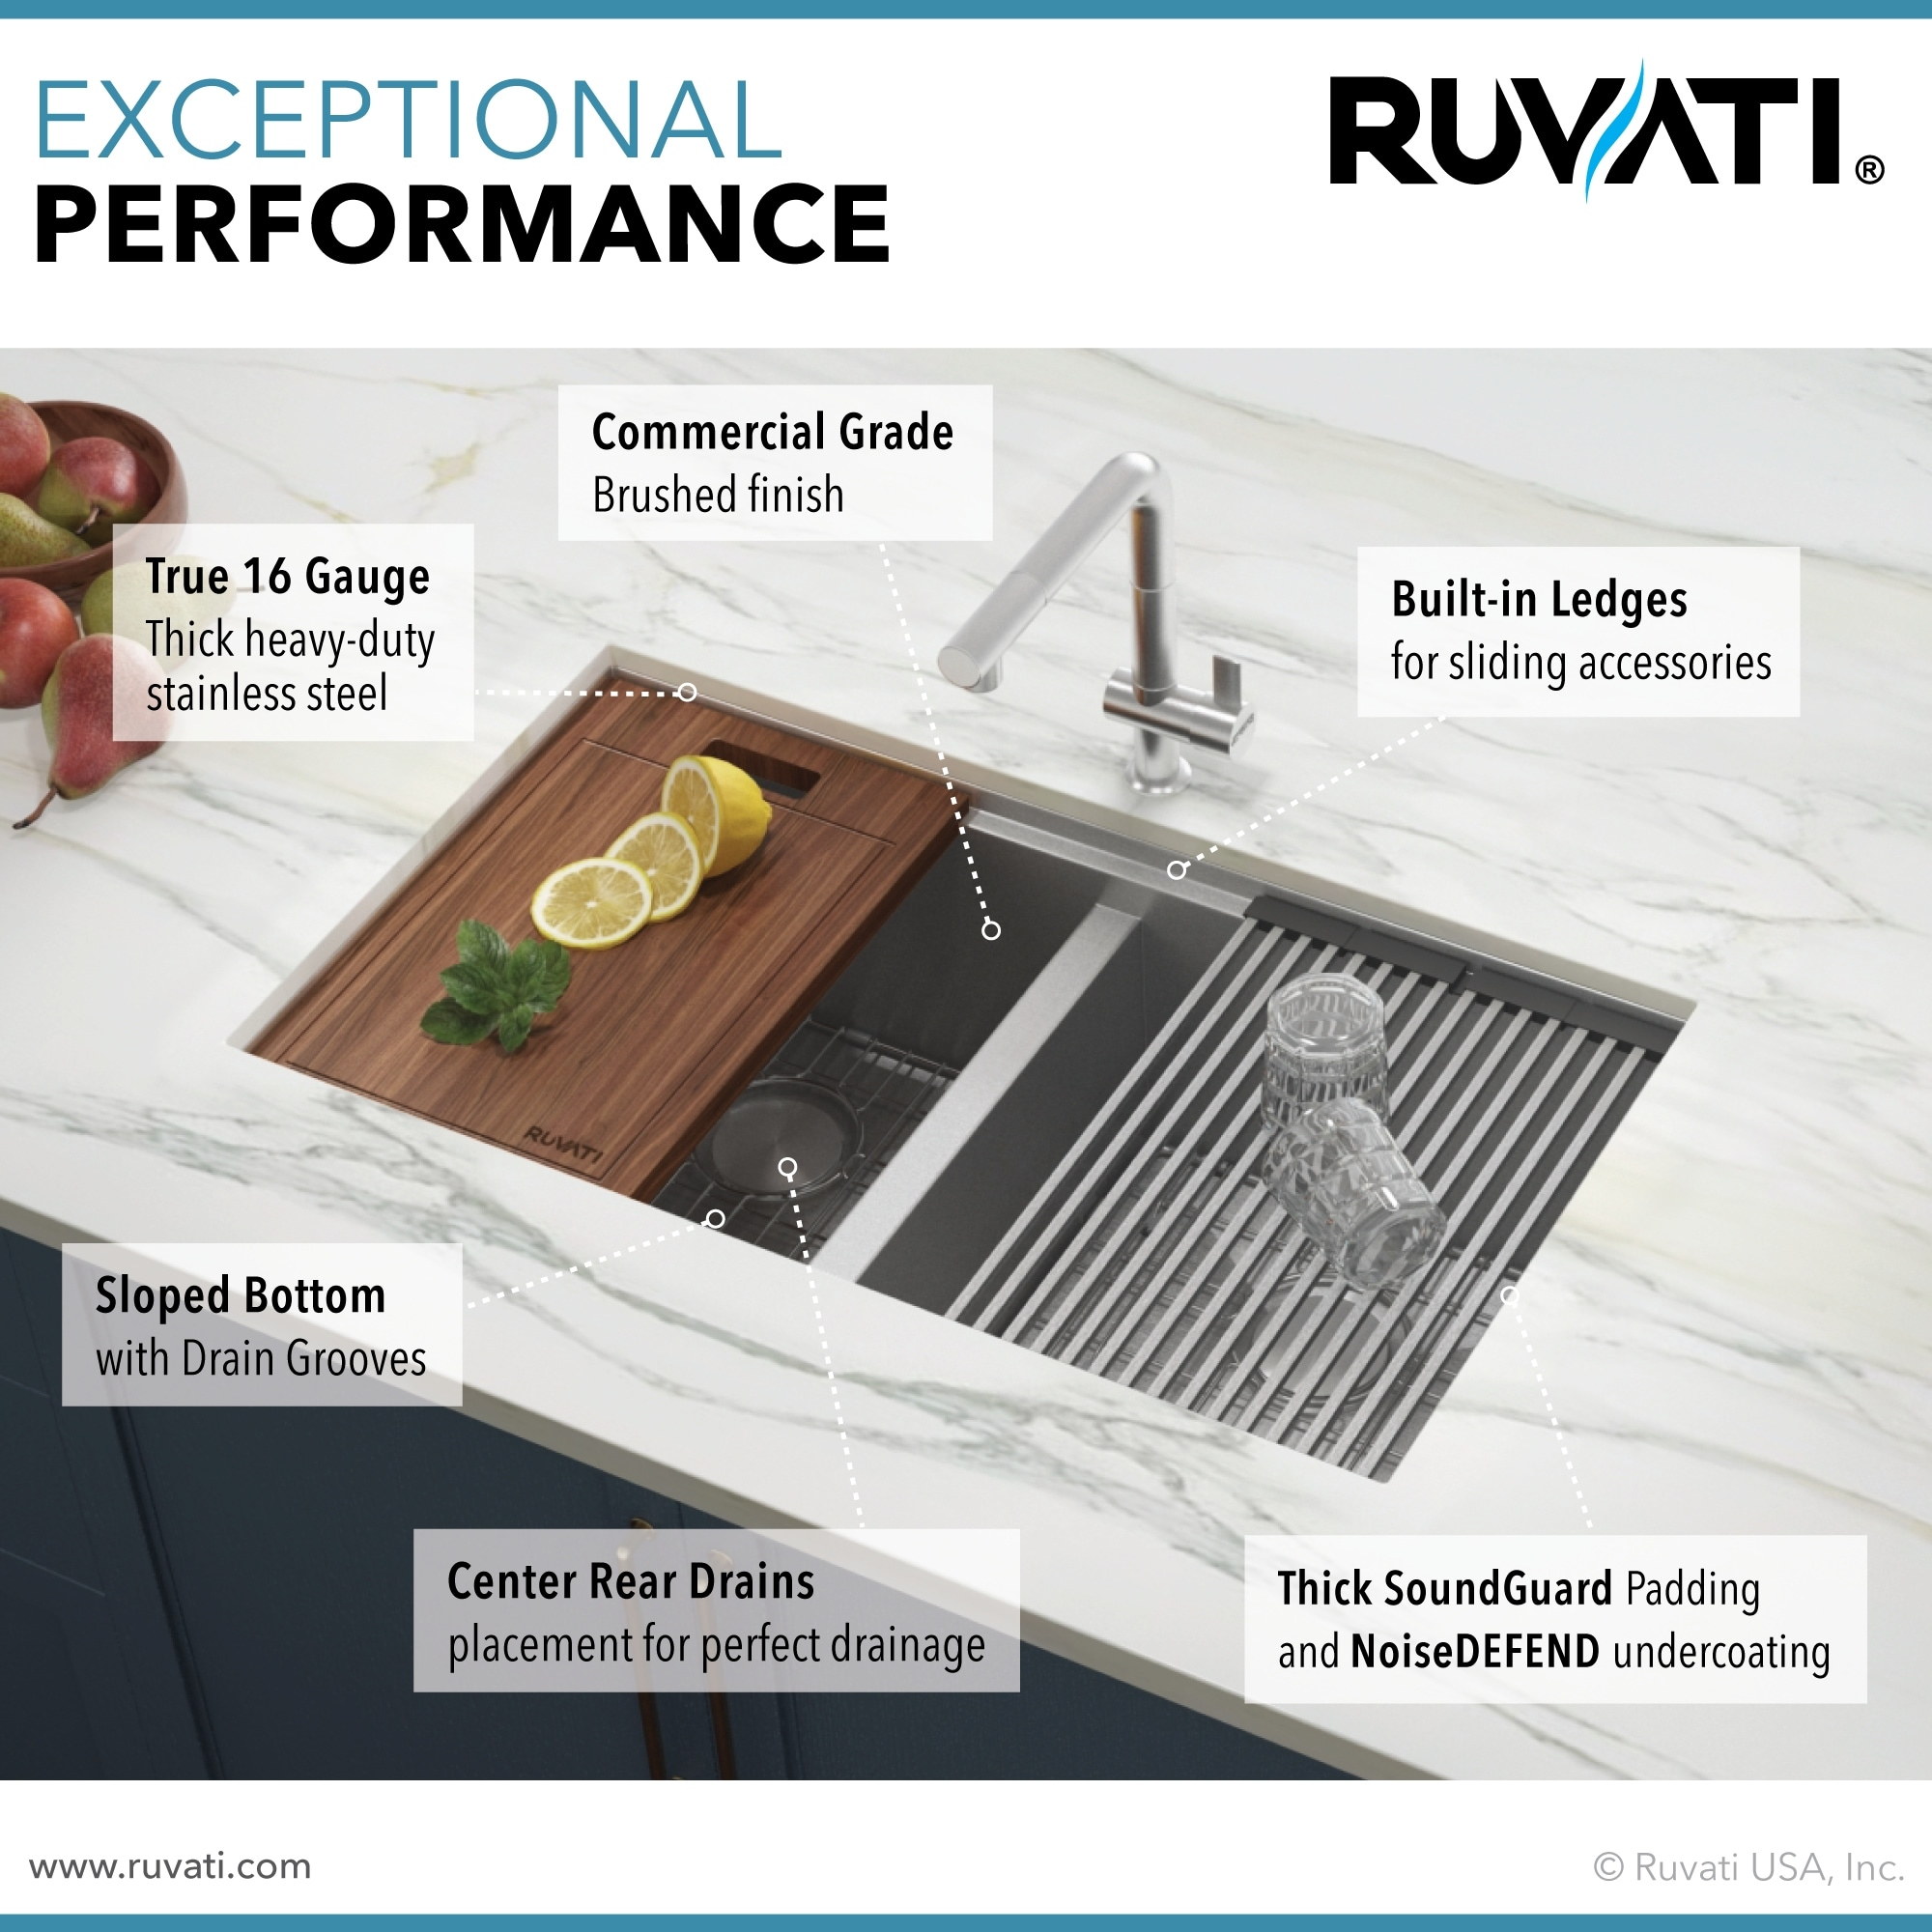 Ruvati 33 Inch Workstation Ledge 50 50 Double Bowl Undermount 16 Gauge Stainless Steel Kitchen Sink Rvh8350 Overstock 7029920